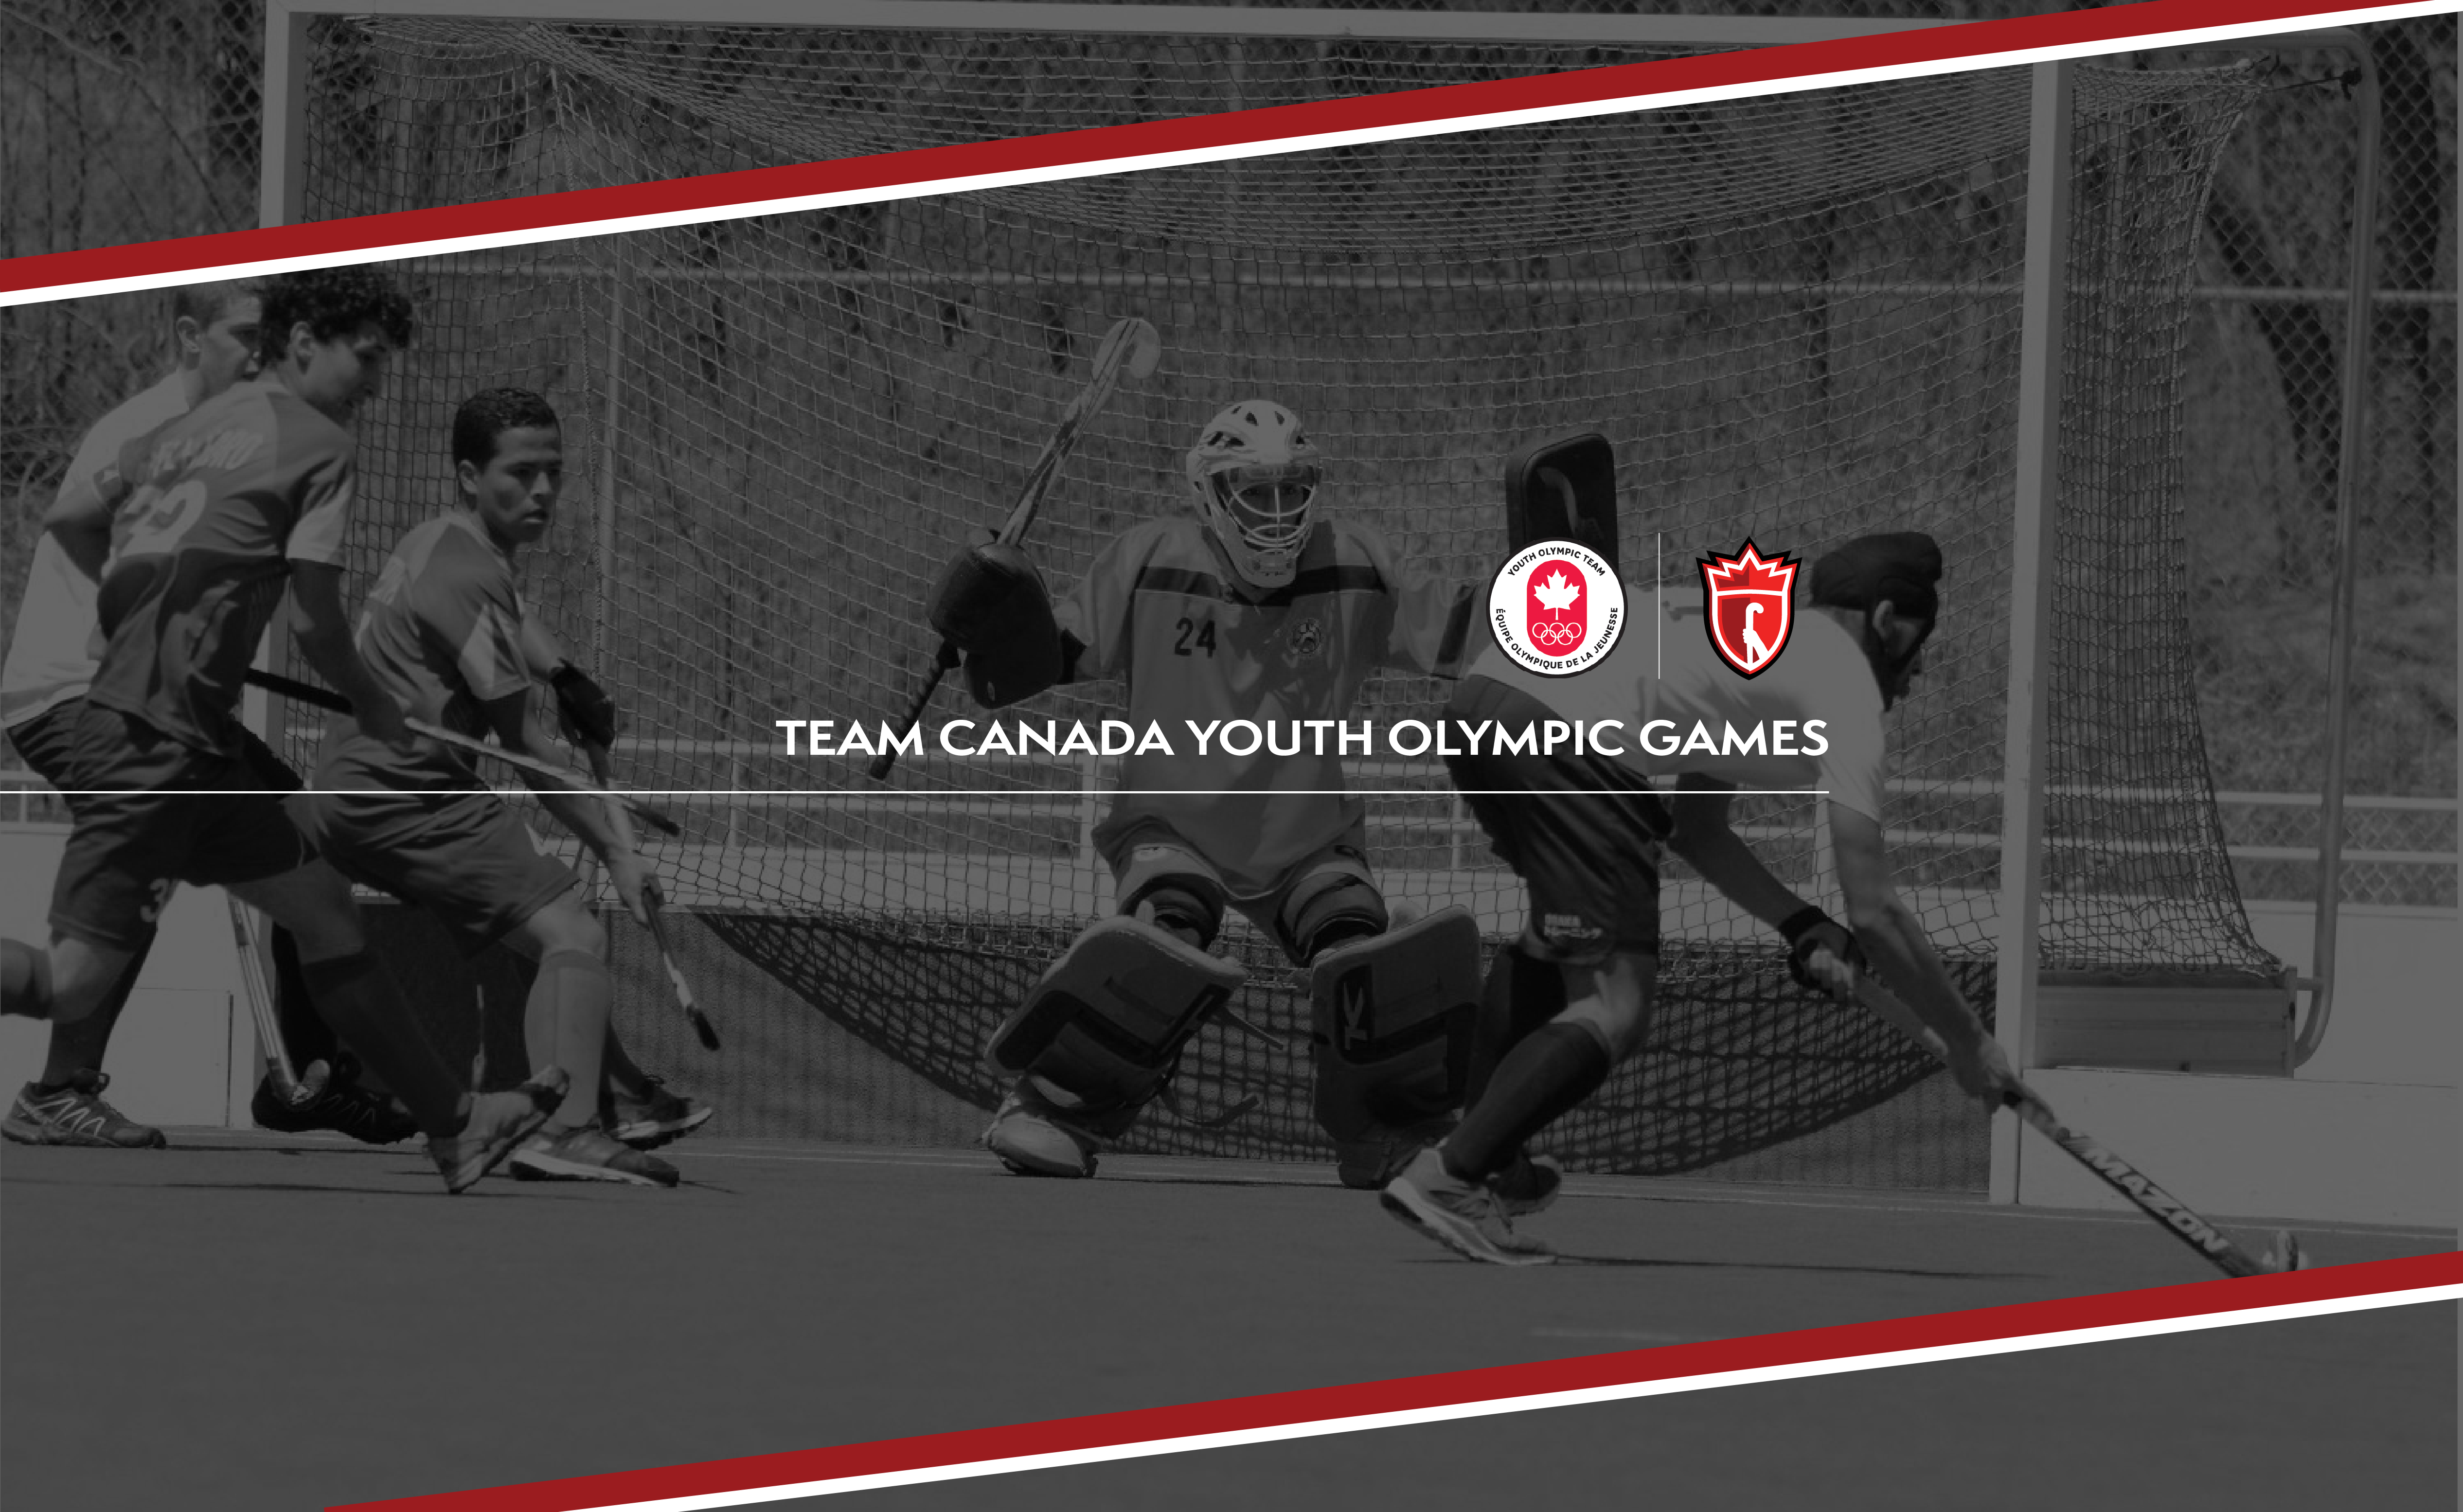 Field Hockey Canada Announces 2018 Youth Olympic Games Roster